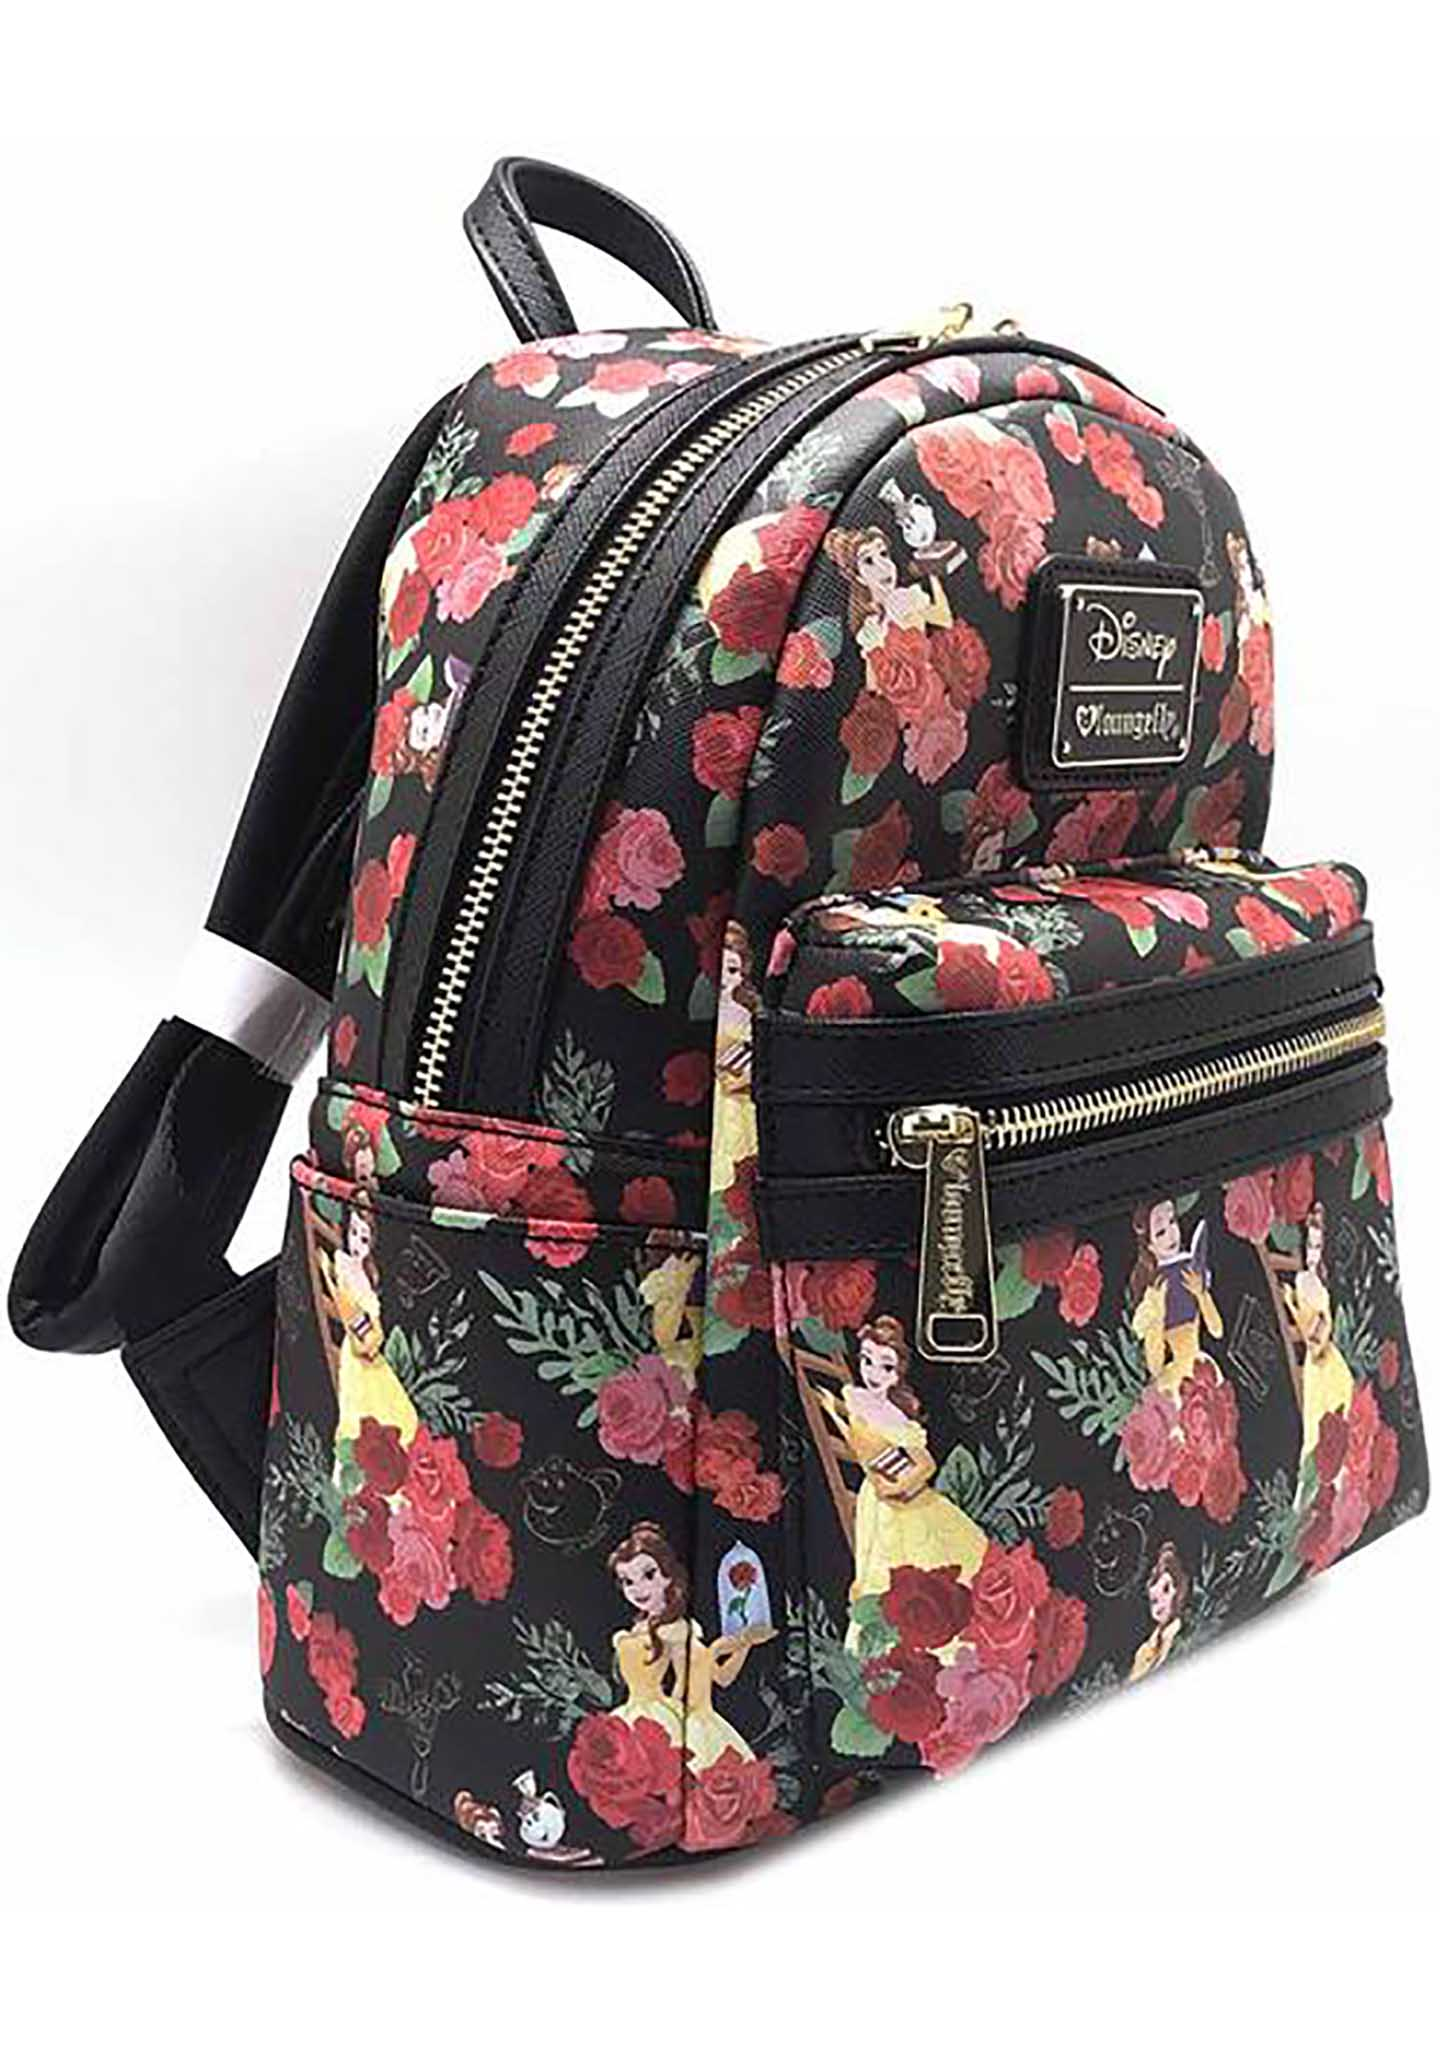 468abe0de71 Loungefly X Disney Belle Roses AOP Mini Backpack